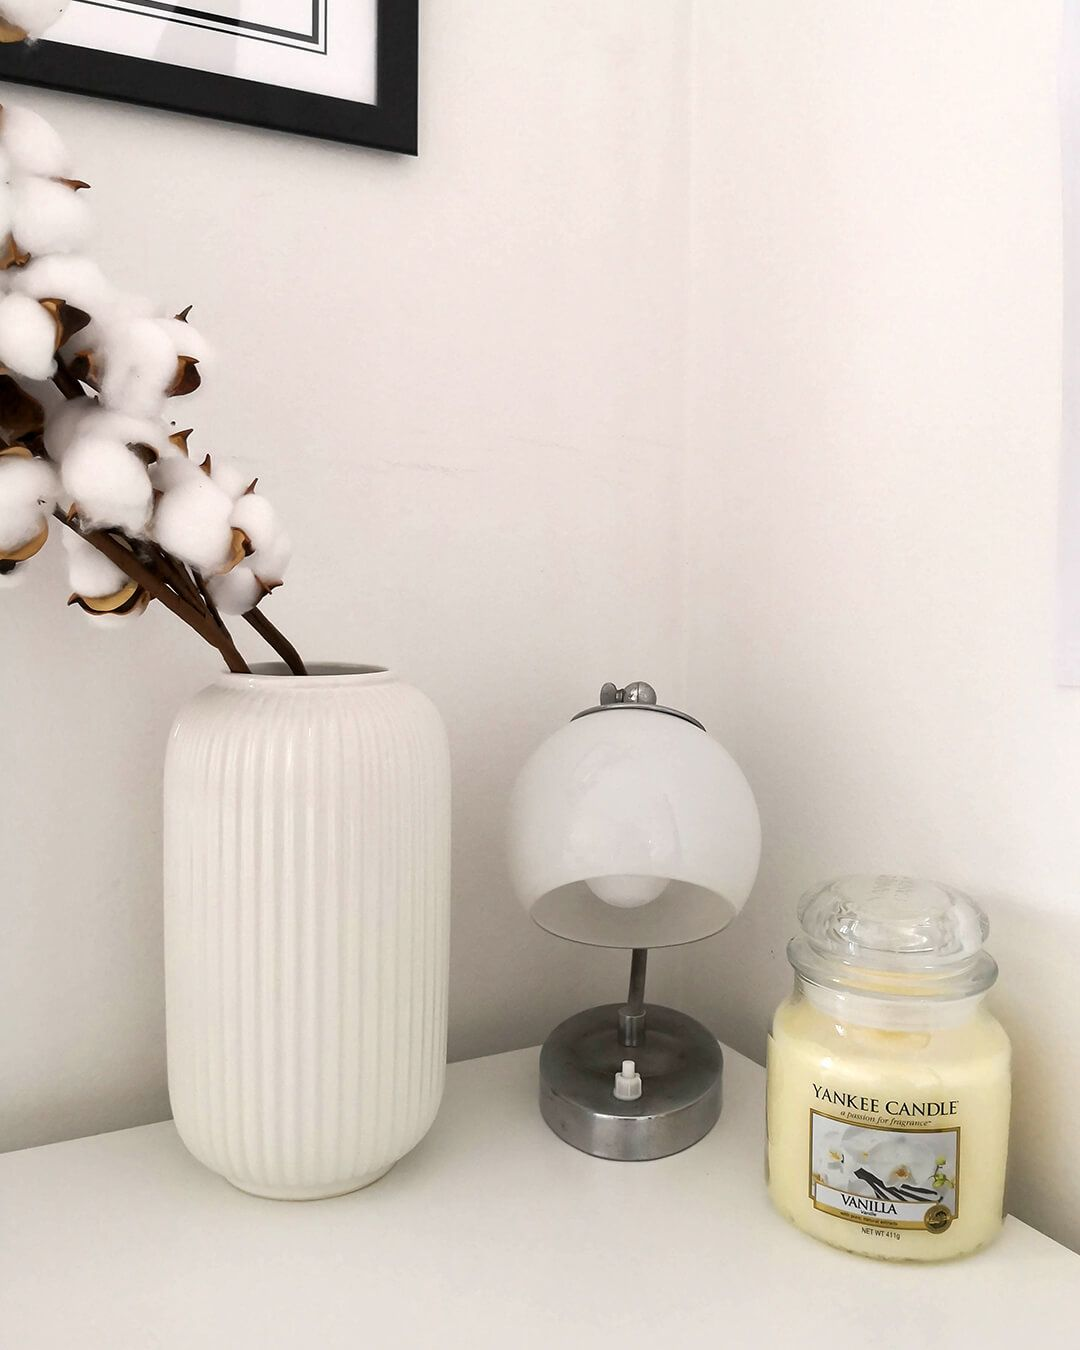 In addition to the Yankee candles being long-lasting with up to 150 hours of burn time, they are also 100% natural